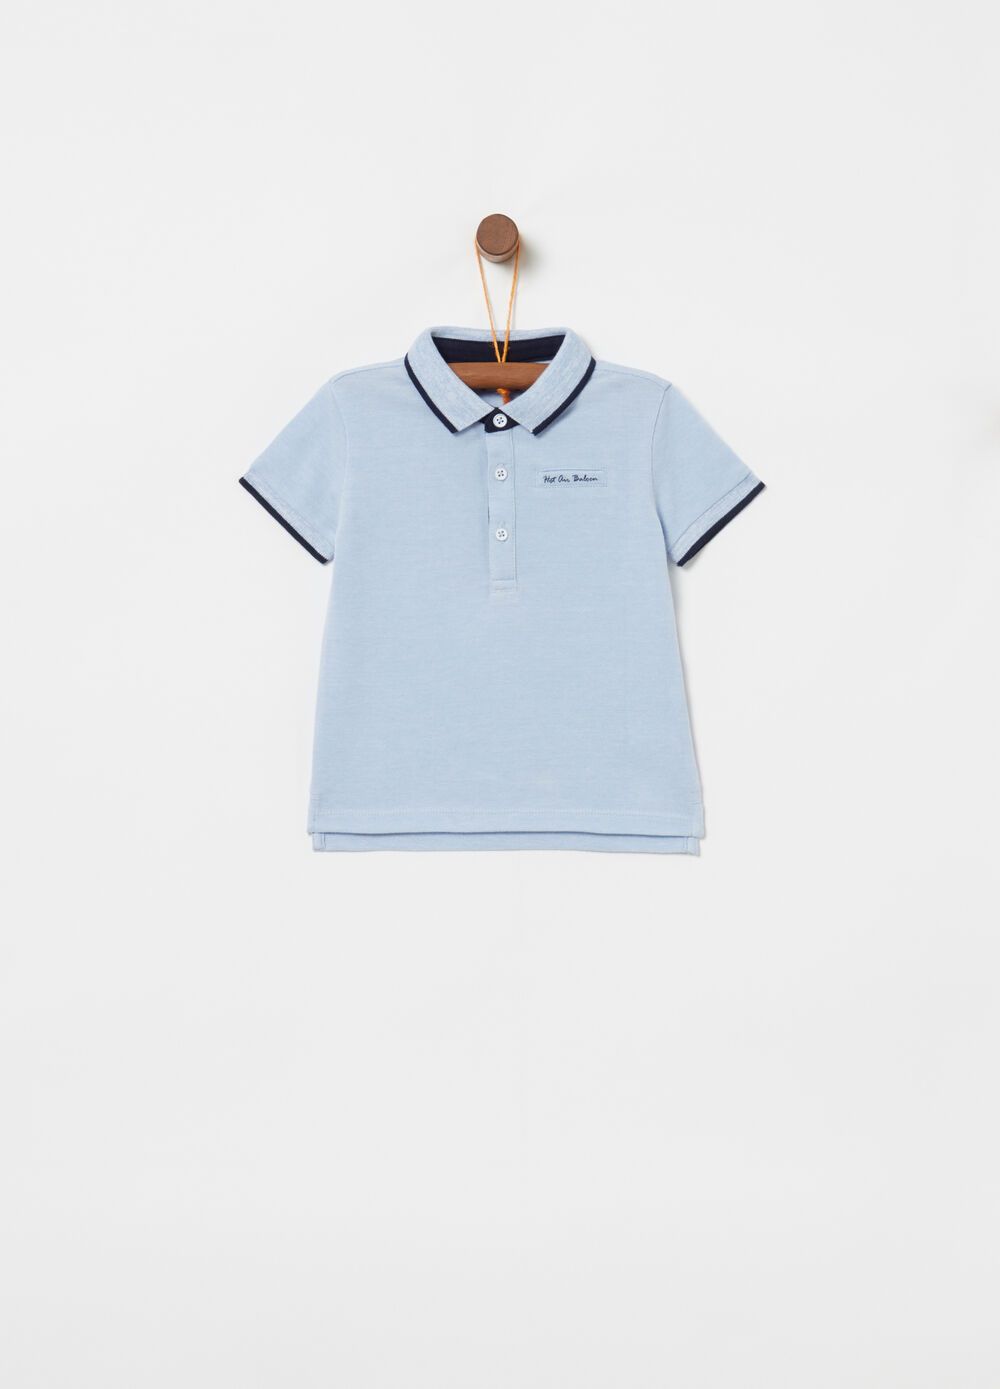 Organic cotton piquet polo shirt with pocket